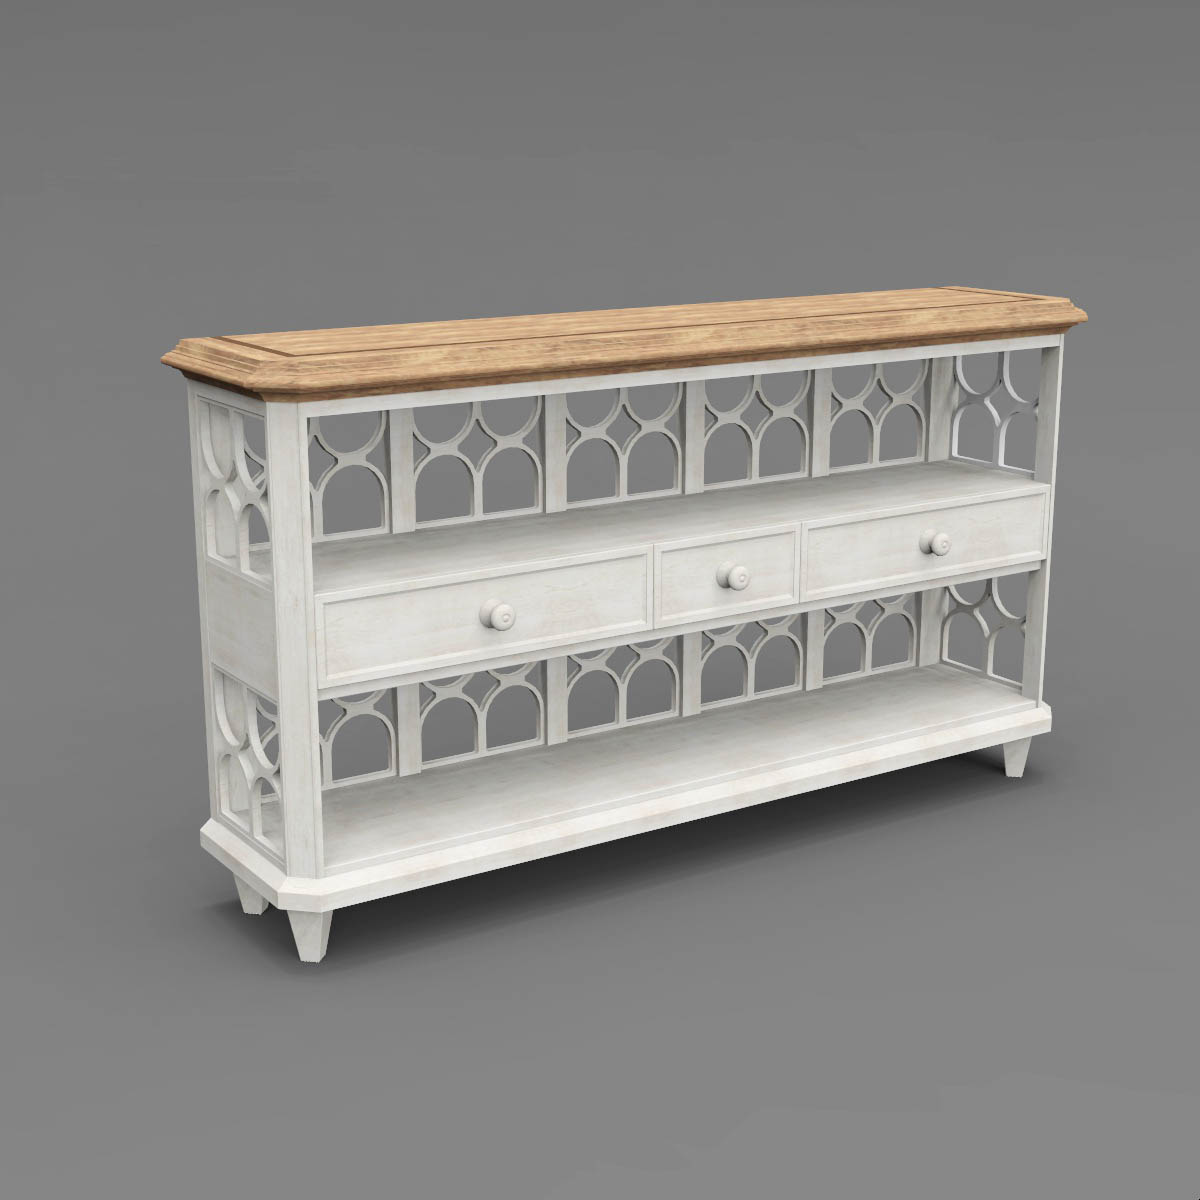 Archipelago-Antilles console table 